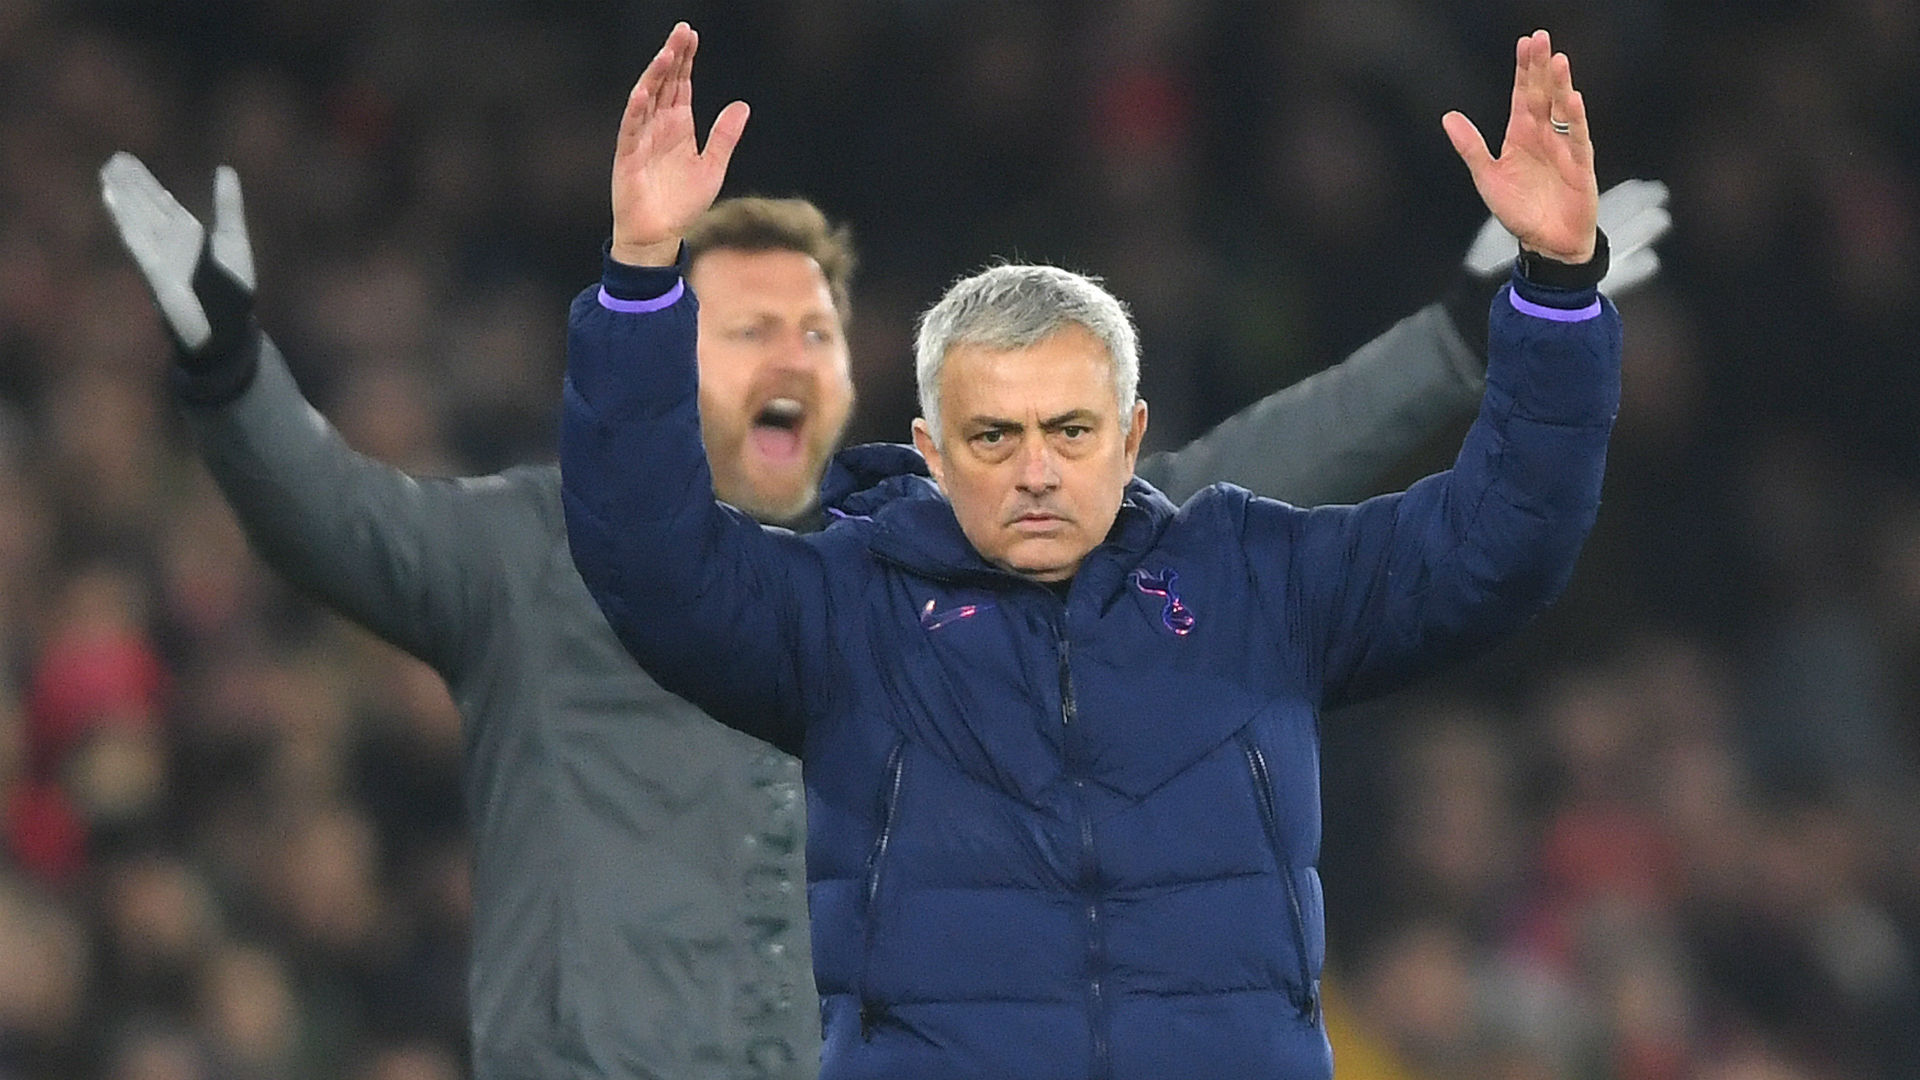 Jose Mourinho unhappy Christian Eriksen to Inter transfer remains unresolved